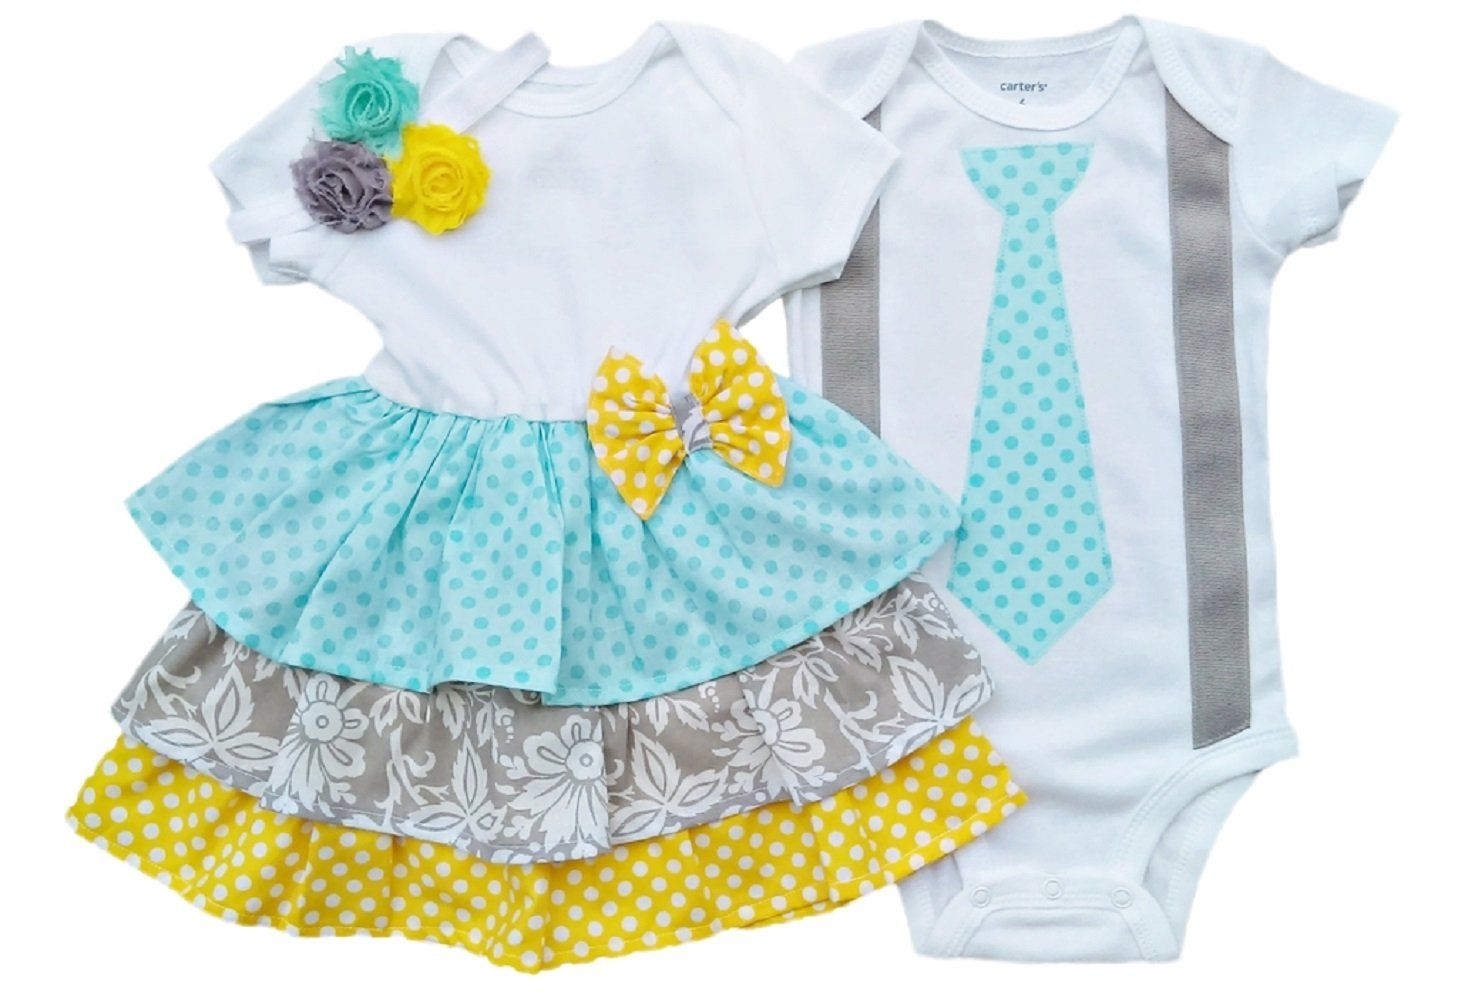 1b5c54e80 Perfect Pairz Boy Girl Twin Outfits Grace and Grayson by USA Made ...